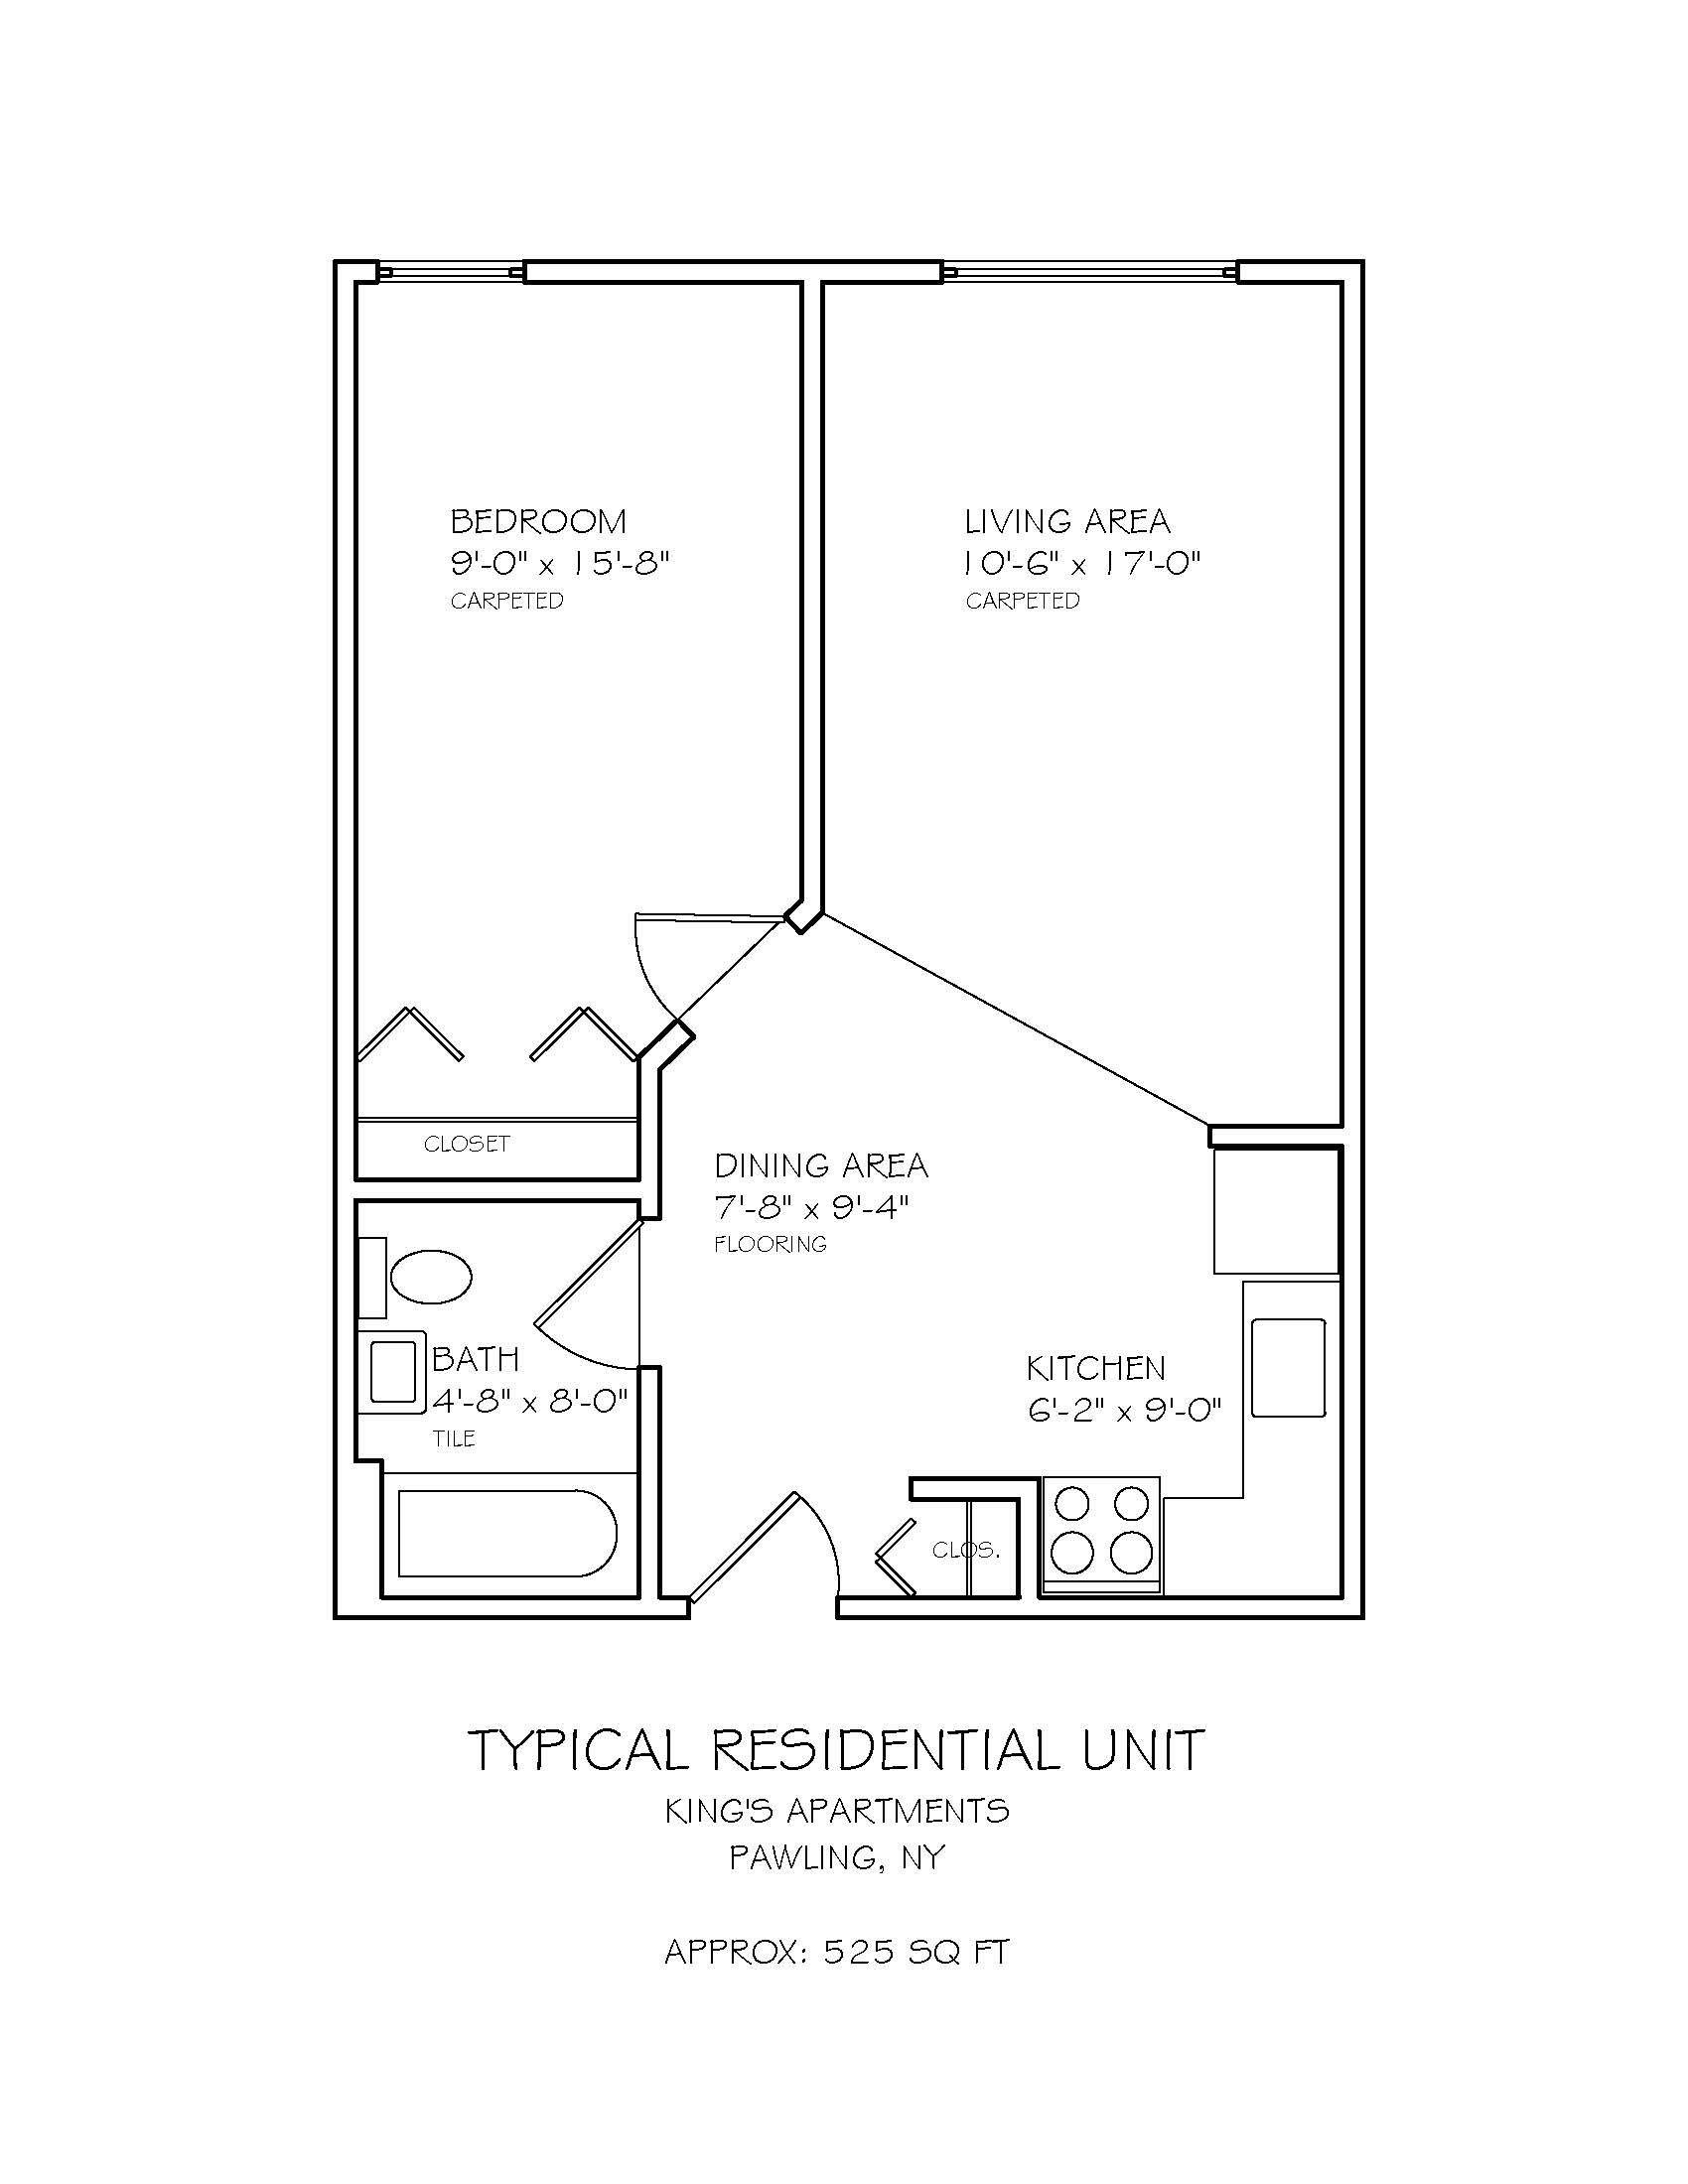 Click to View Enlarged Floor Plan